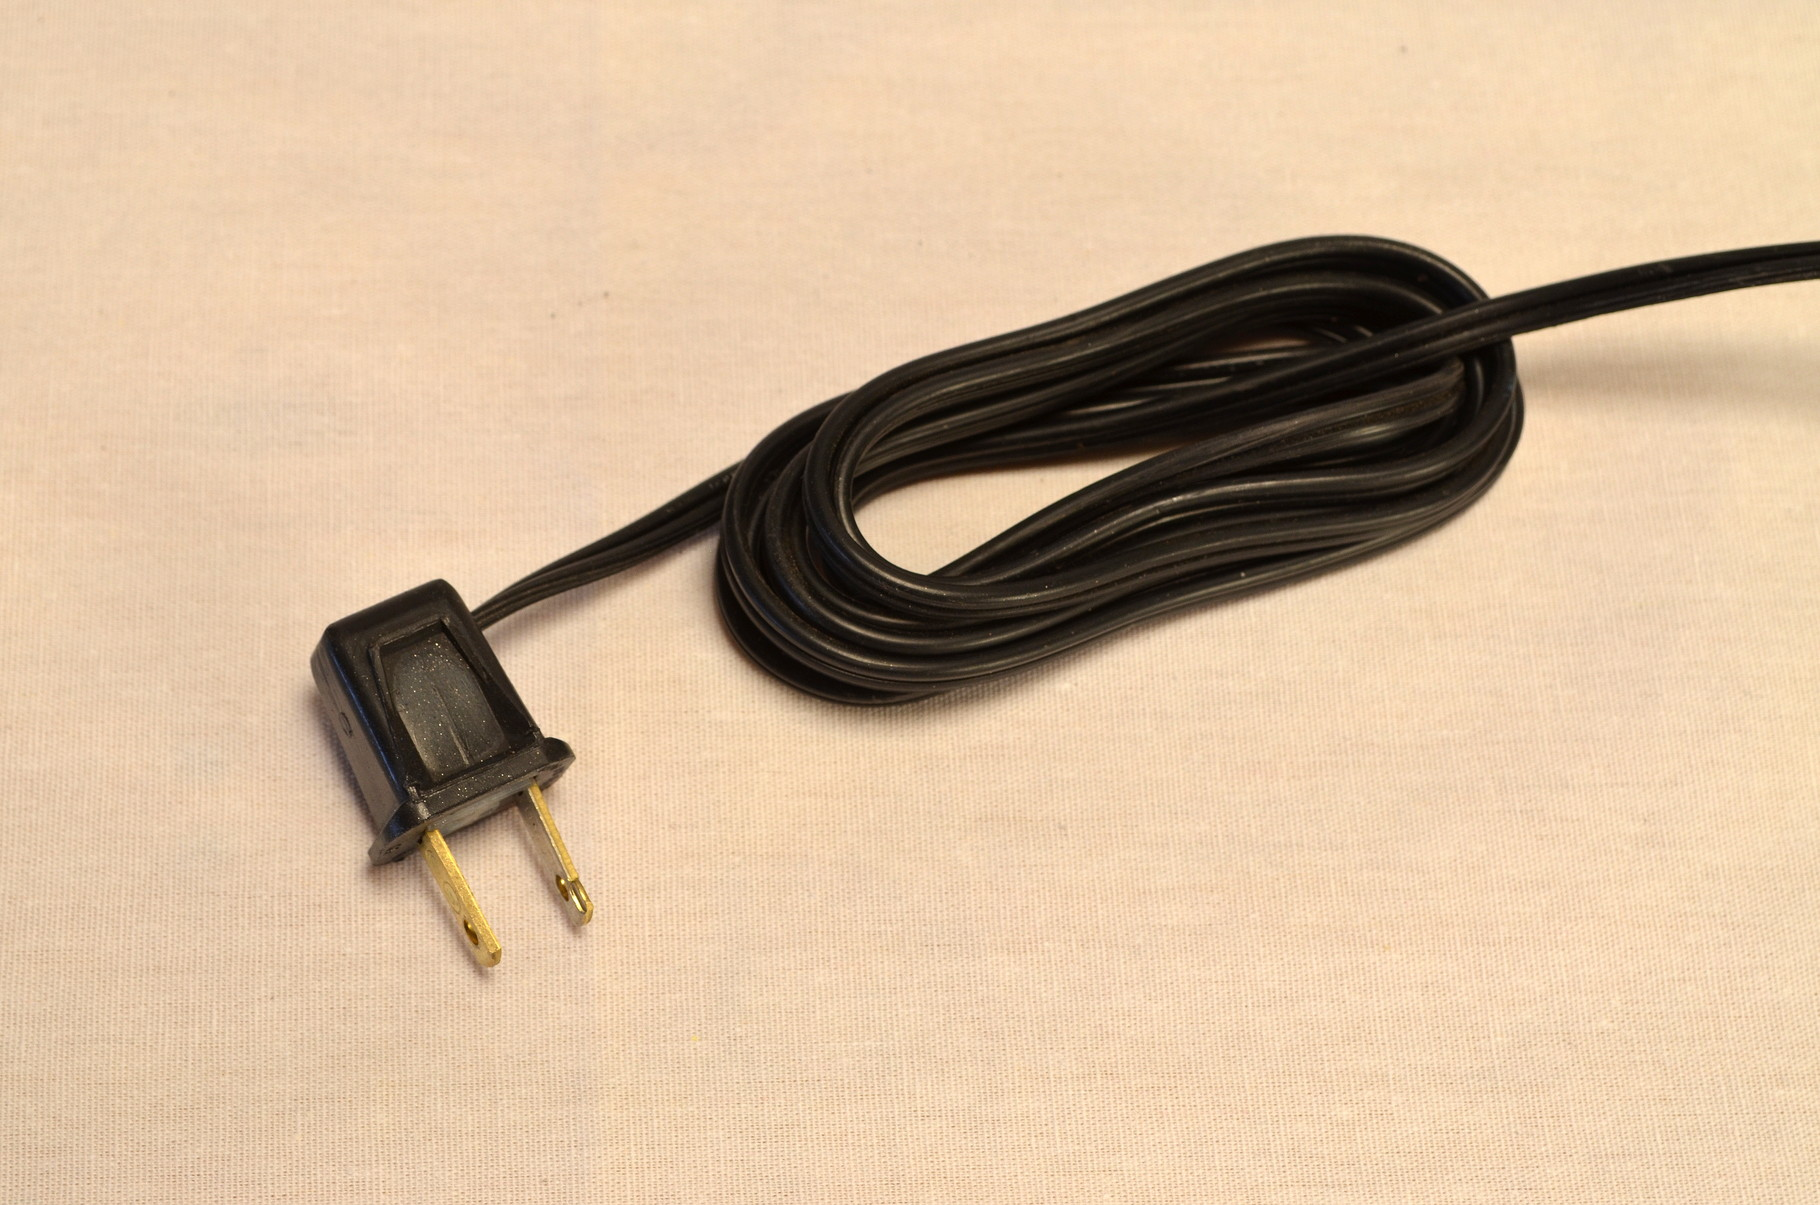 Classic black +8' heavy duty cord and vintage-style black plug.